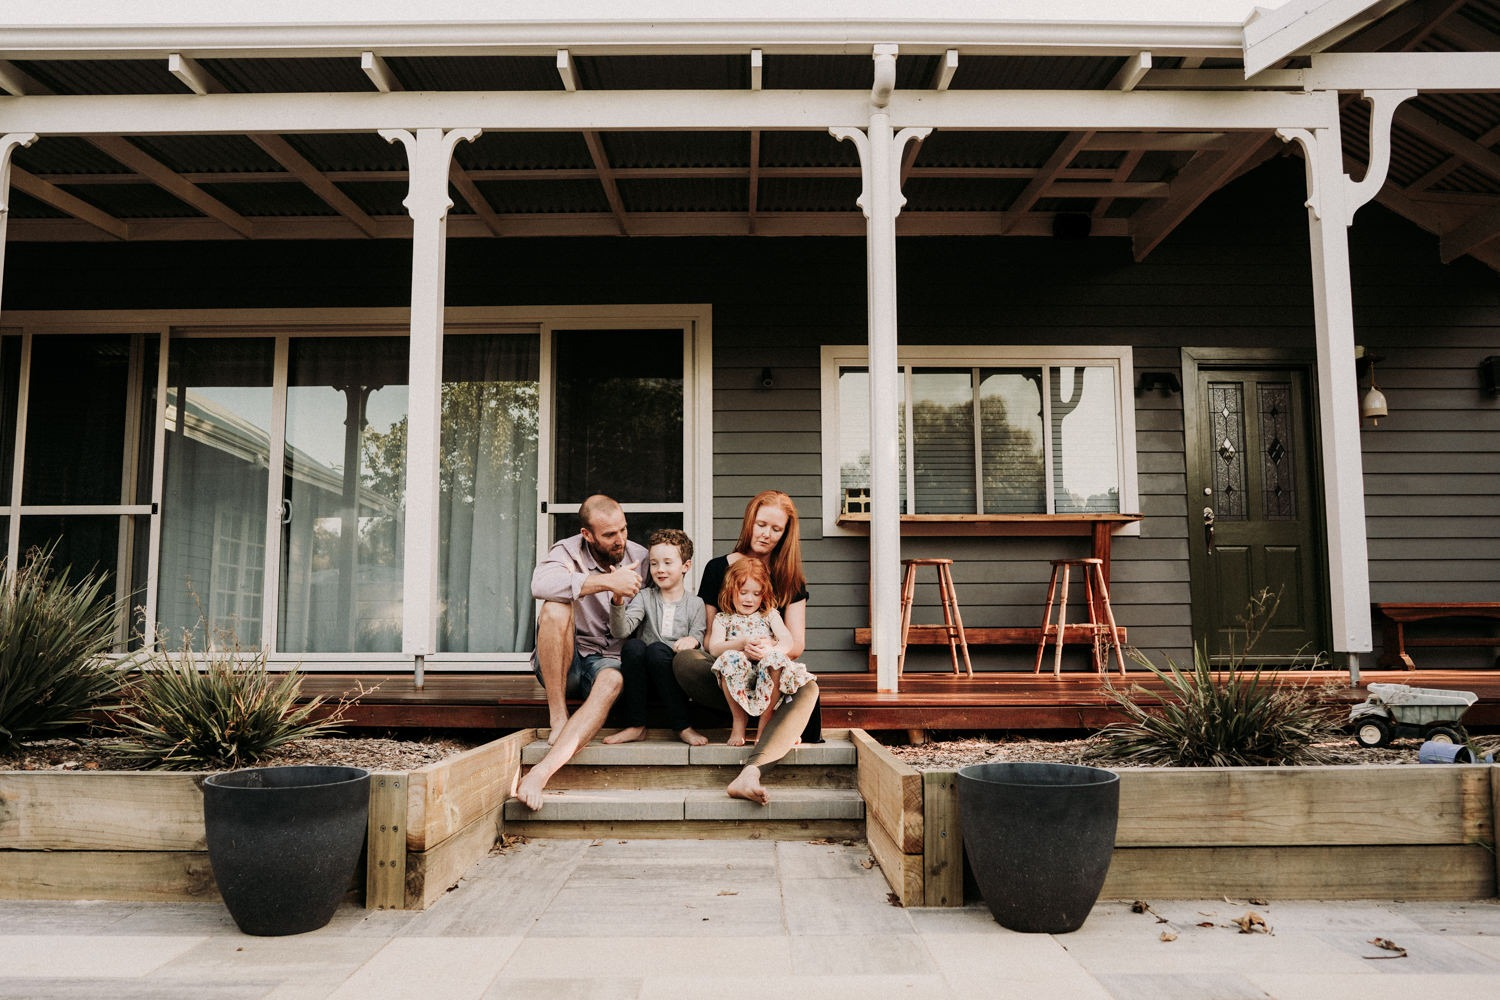 Family portrait on the veranda of their home in Byron bay